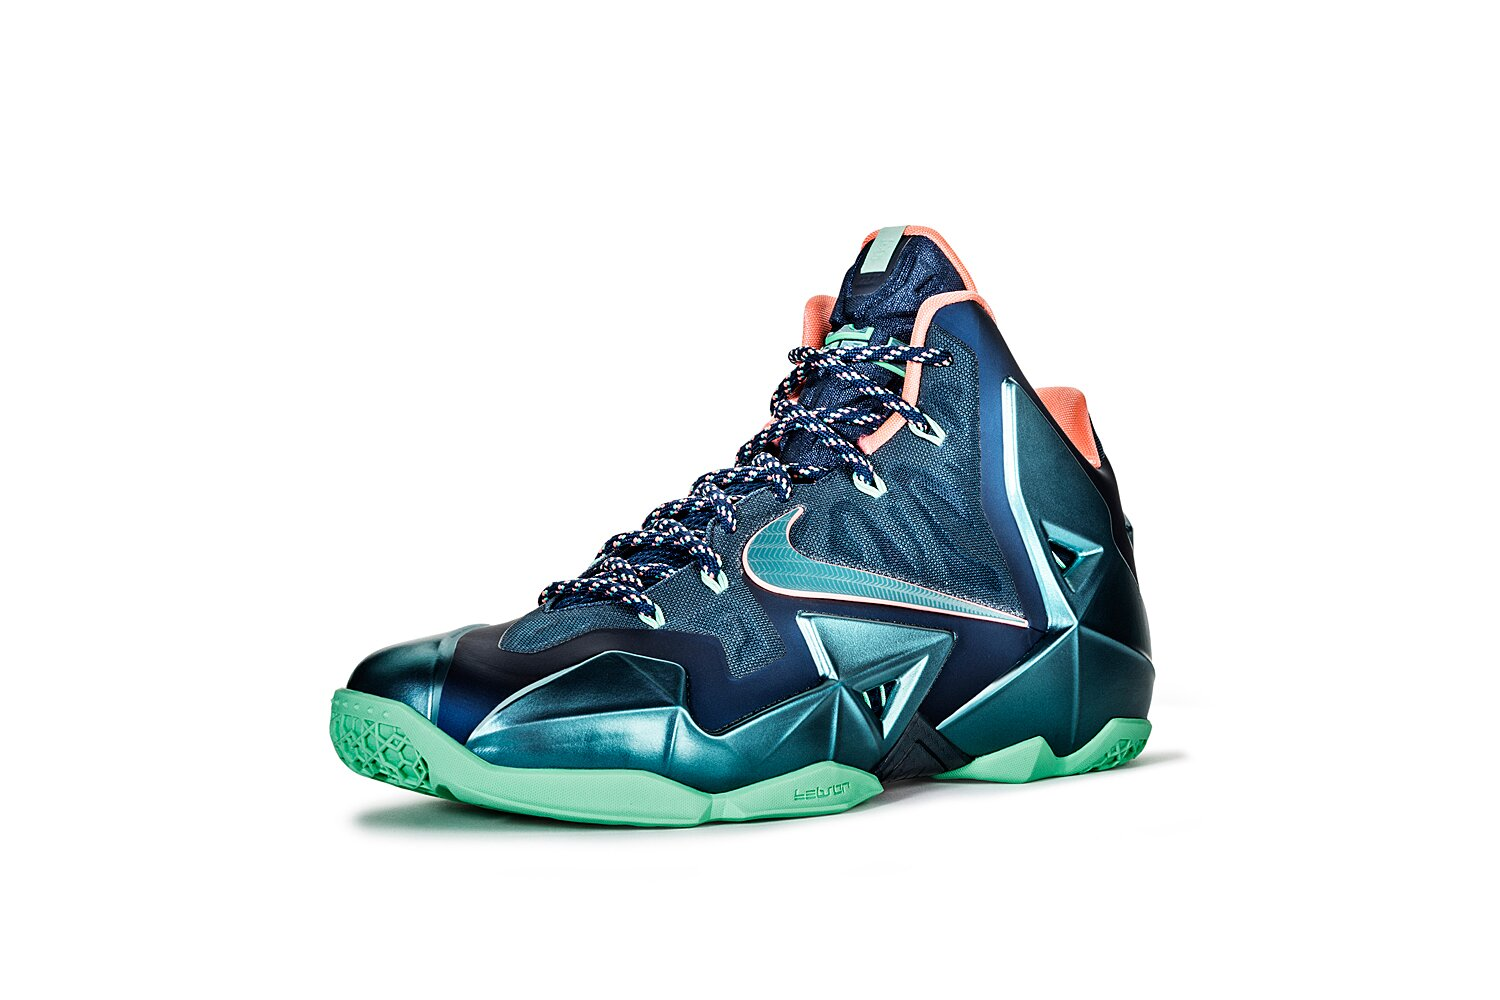 buy online 53bba dcb20 LeBron James Signature Sneakers  Ranking the Best of the King   SI.com